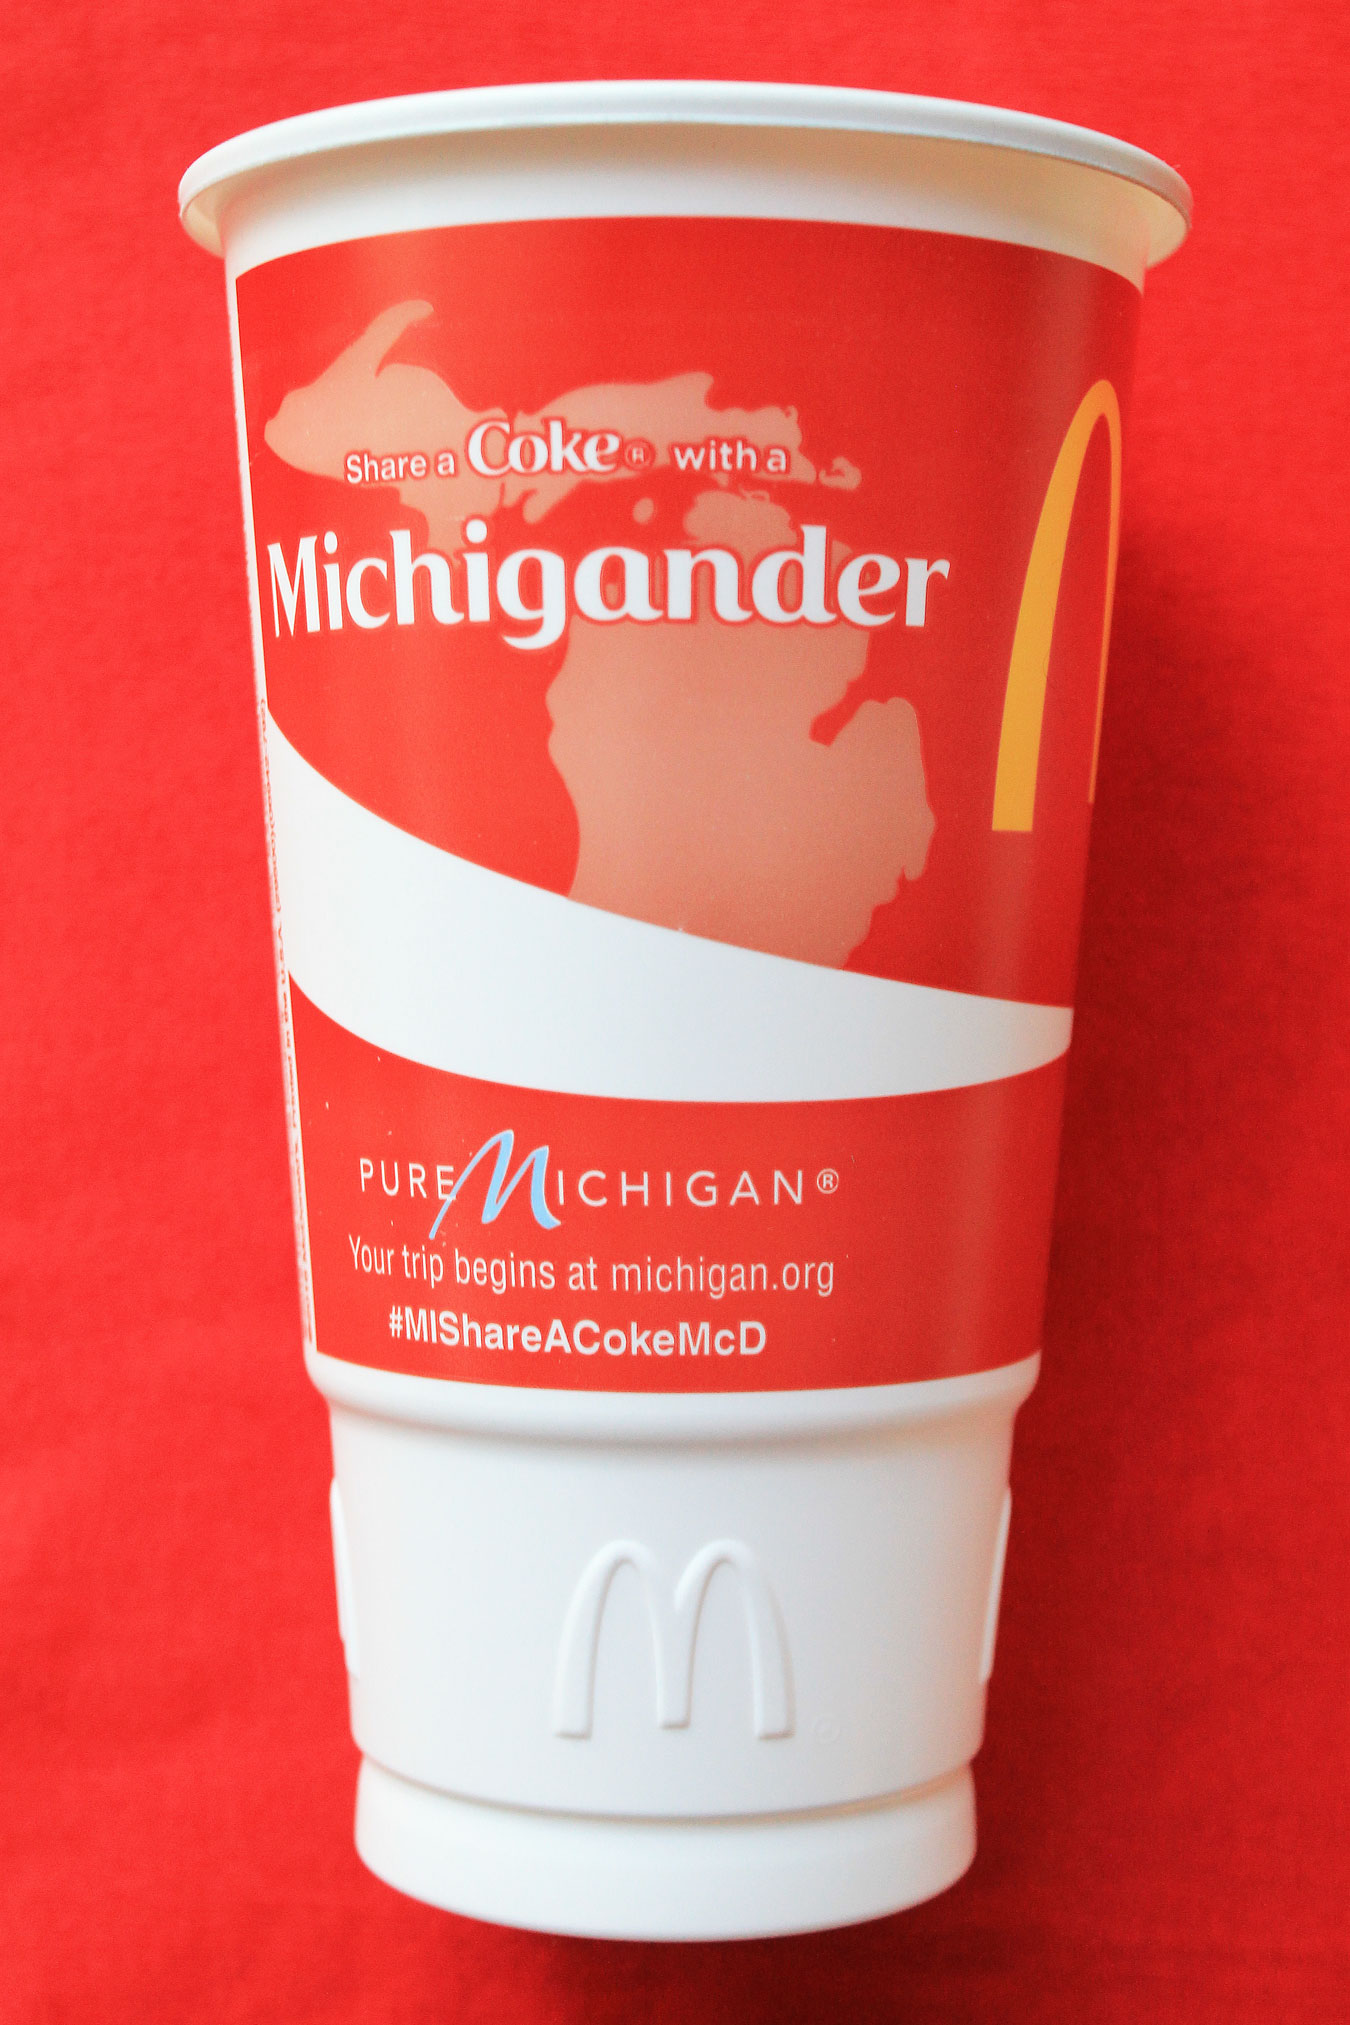 End of Summer Road Trip: Share A Coke Michigan Style At McDonald's (MIShareACokeMcD) - via Wading in Big Shoes